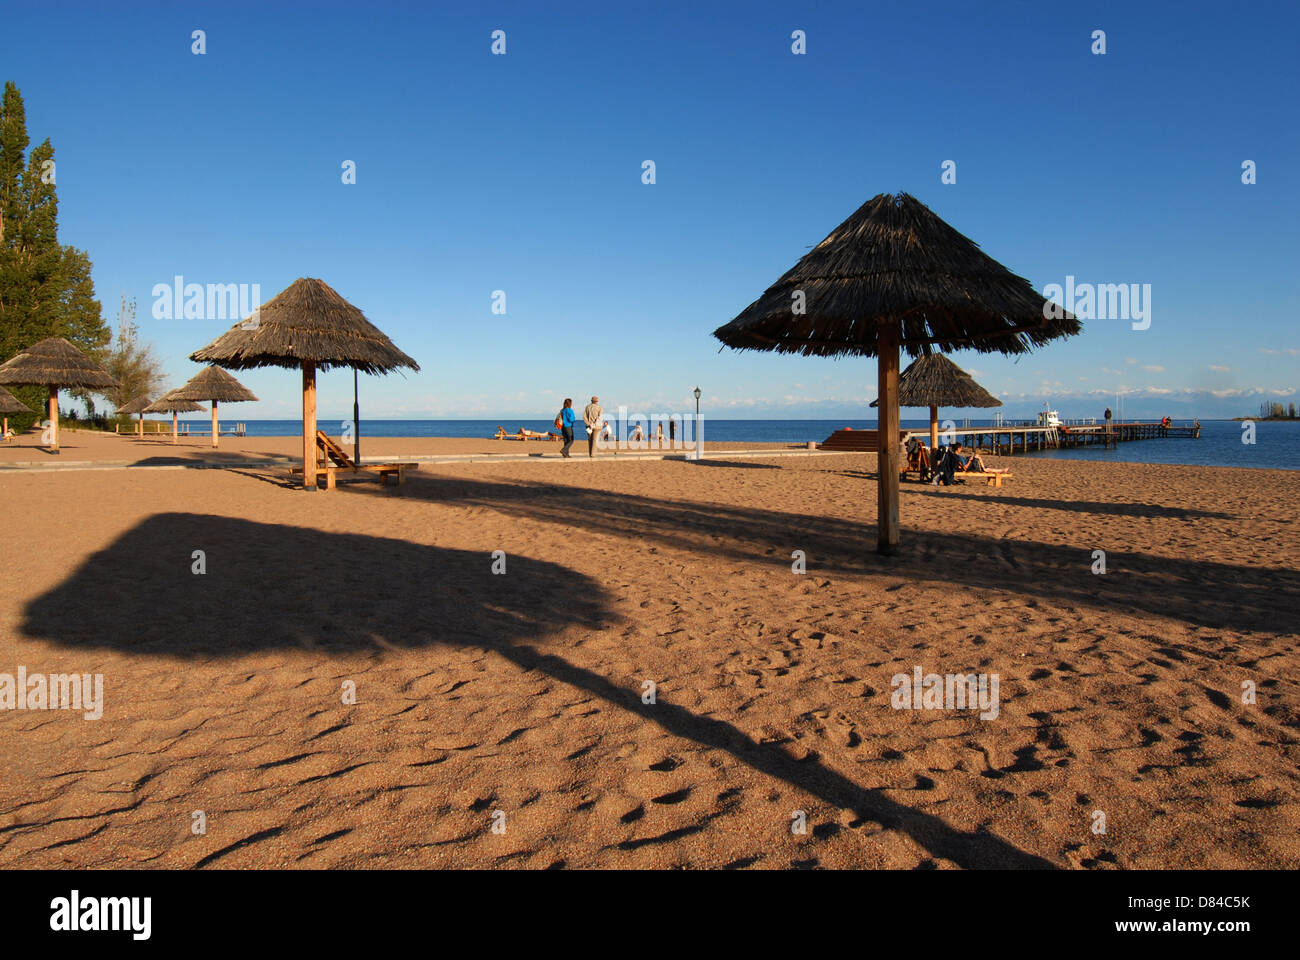 Few shelters at the beach of the Issyk Kul lake an the sunset. Issyk Kul region, Kyrgyzstan - Stock Image